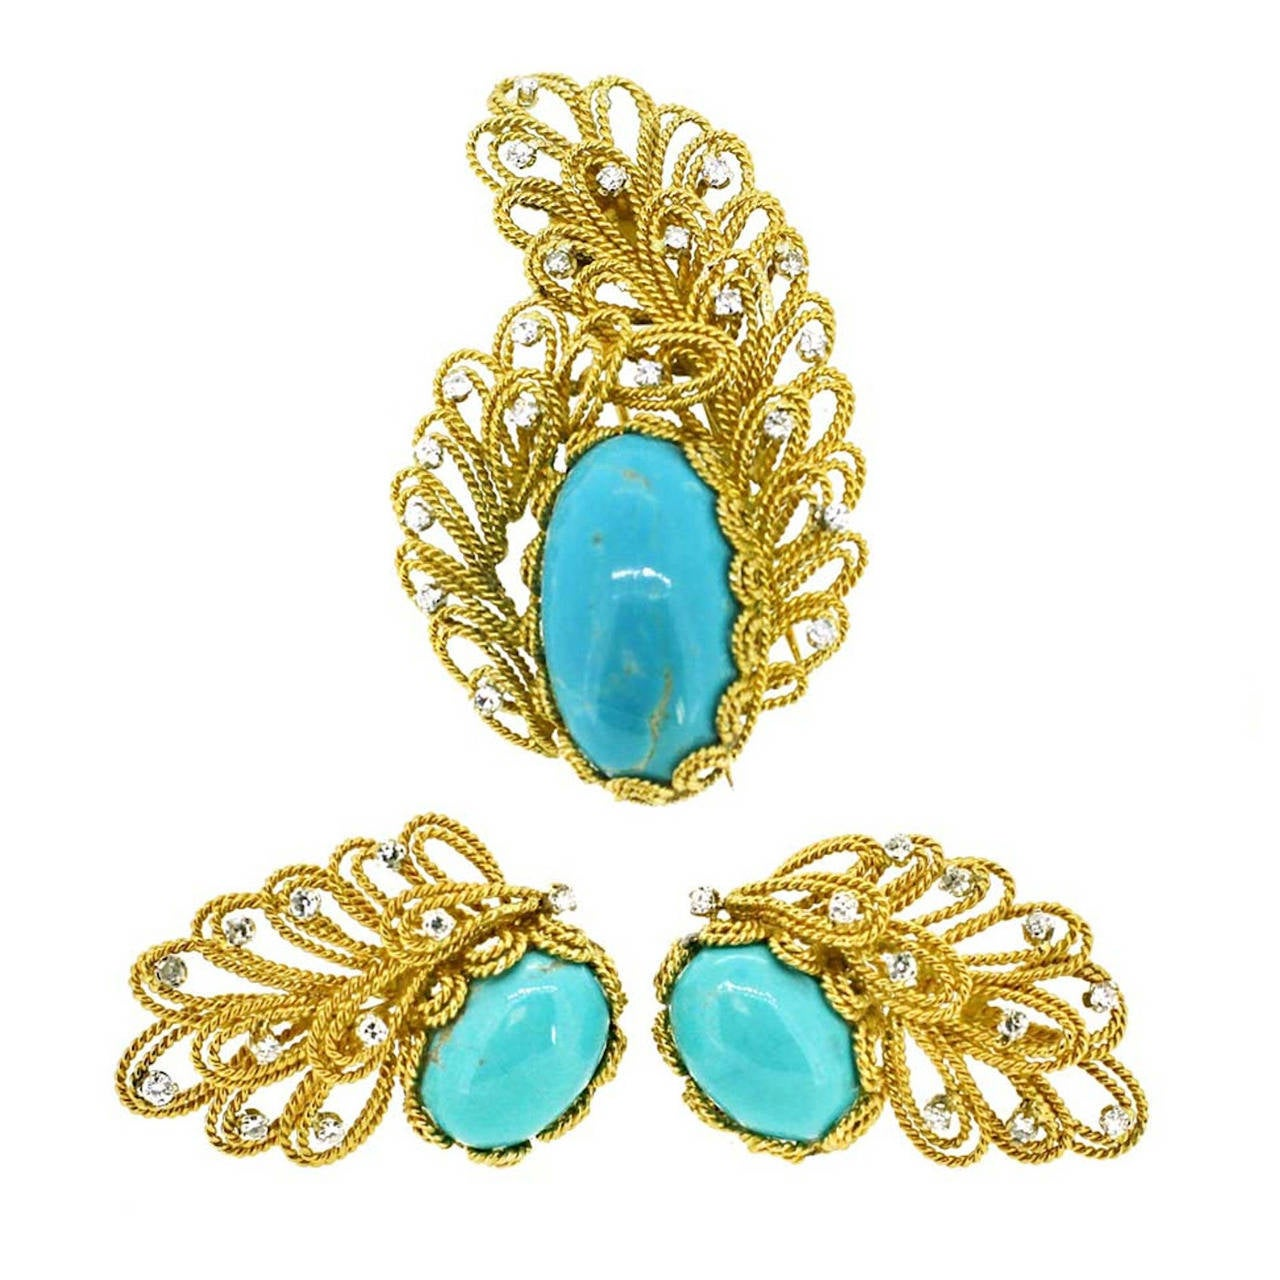 Boucheron Turquoise Diamond Gold Earrings and Brooch